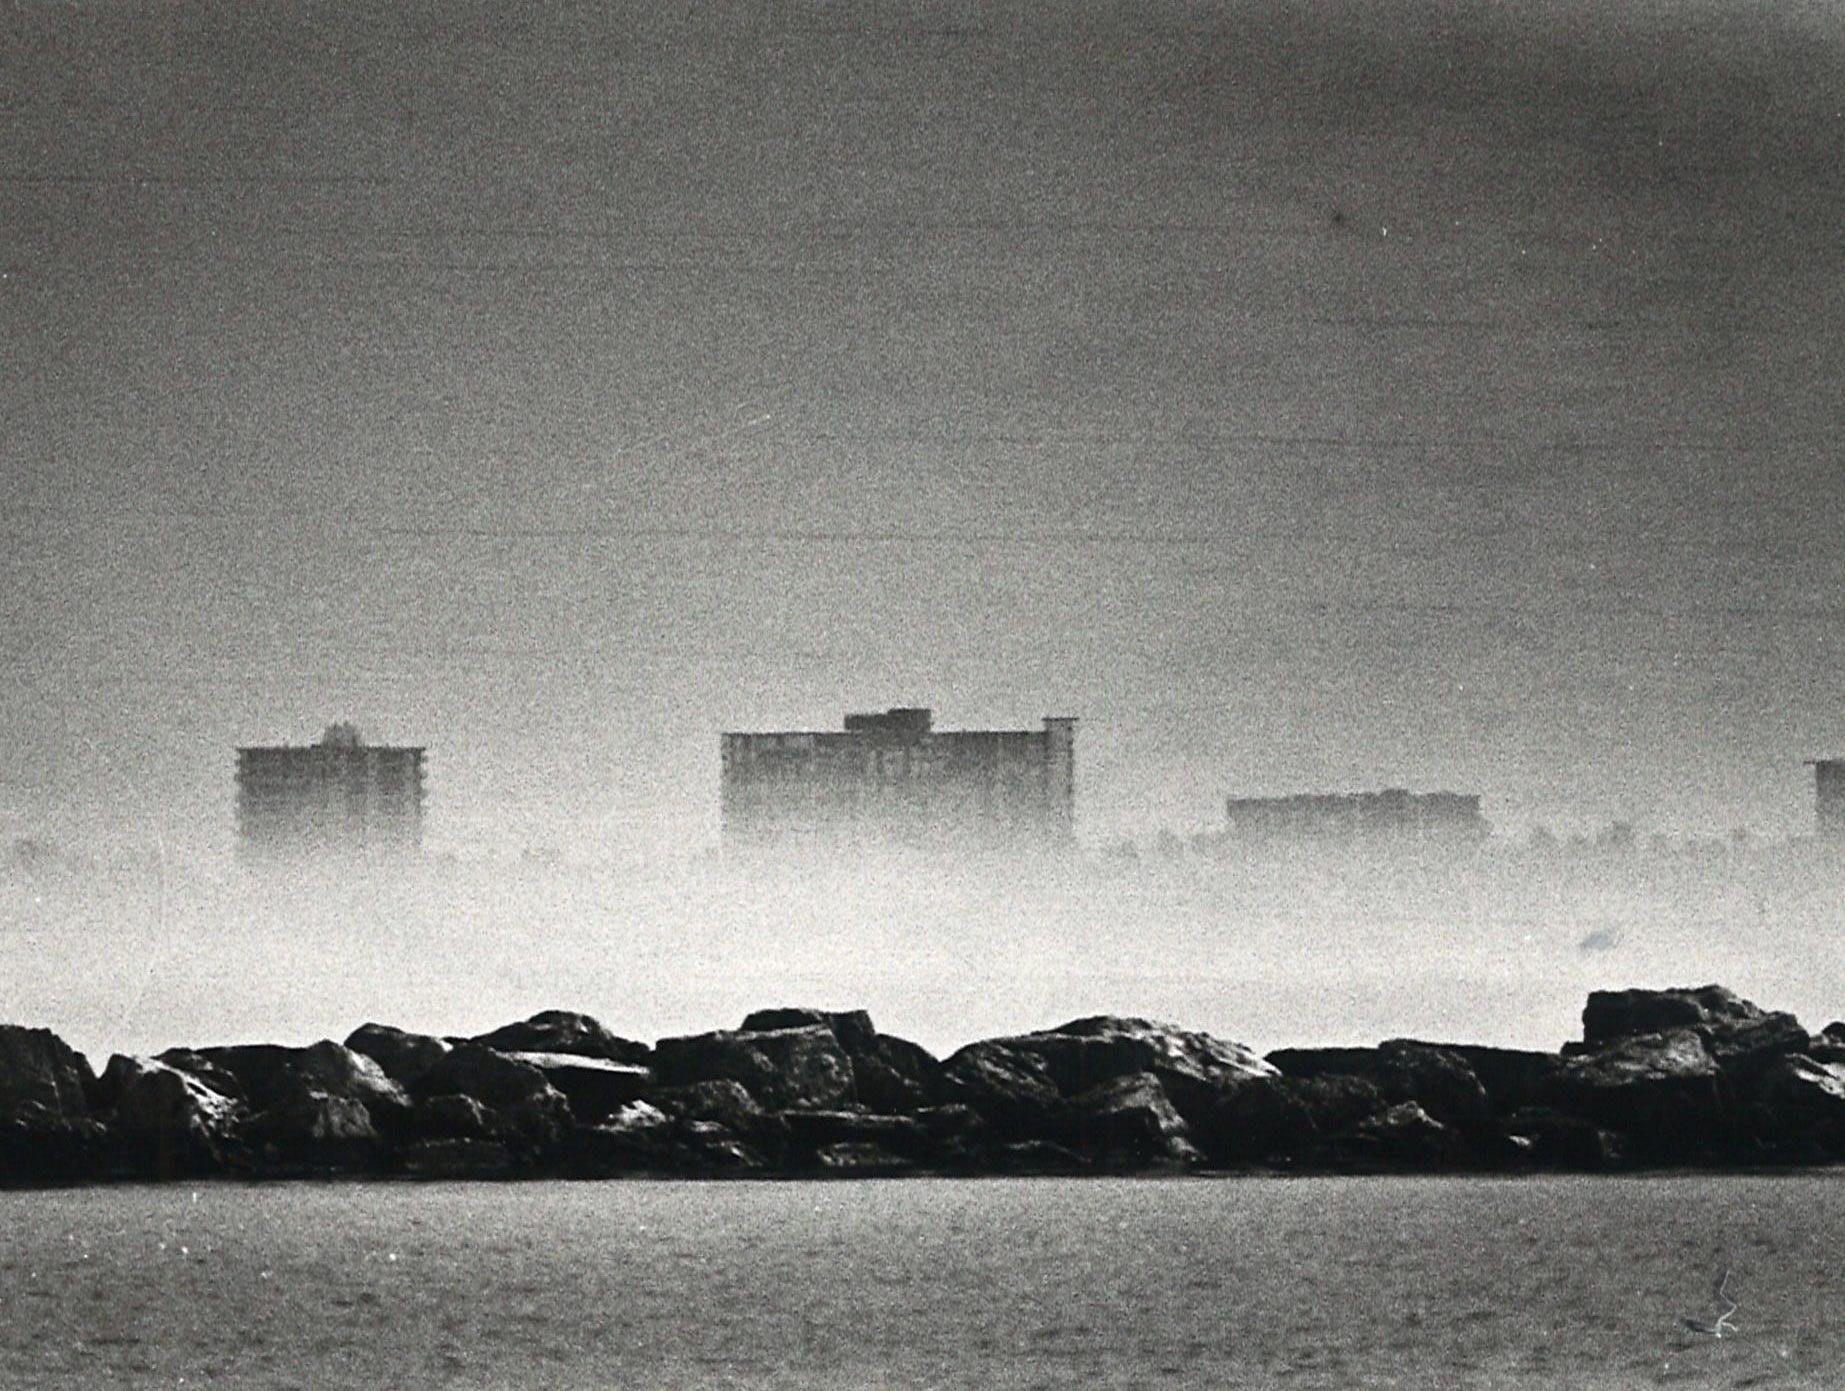 The condos along Ocean Drive hide in the fog along Corpus Christi Bay on Jan. 6, 1983.